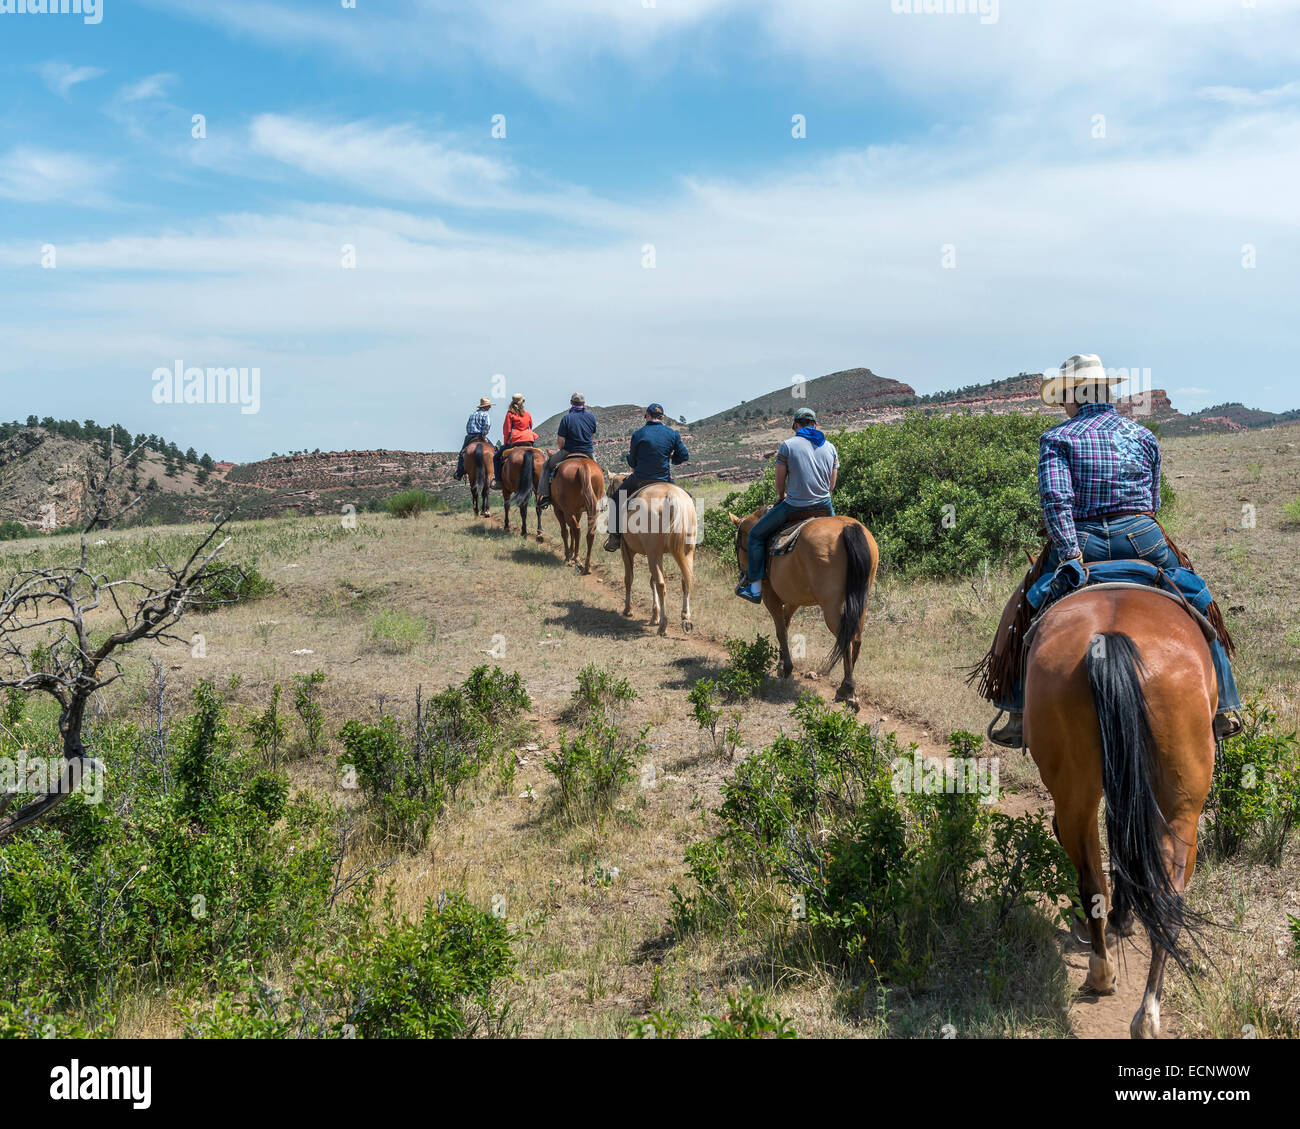 Horseback riding at the Sylvan Dale Guest Ranch. Colorado. USA - Stock Image